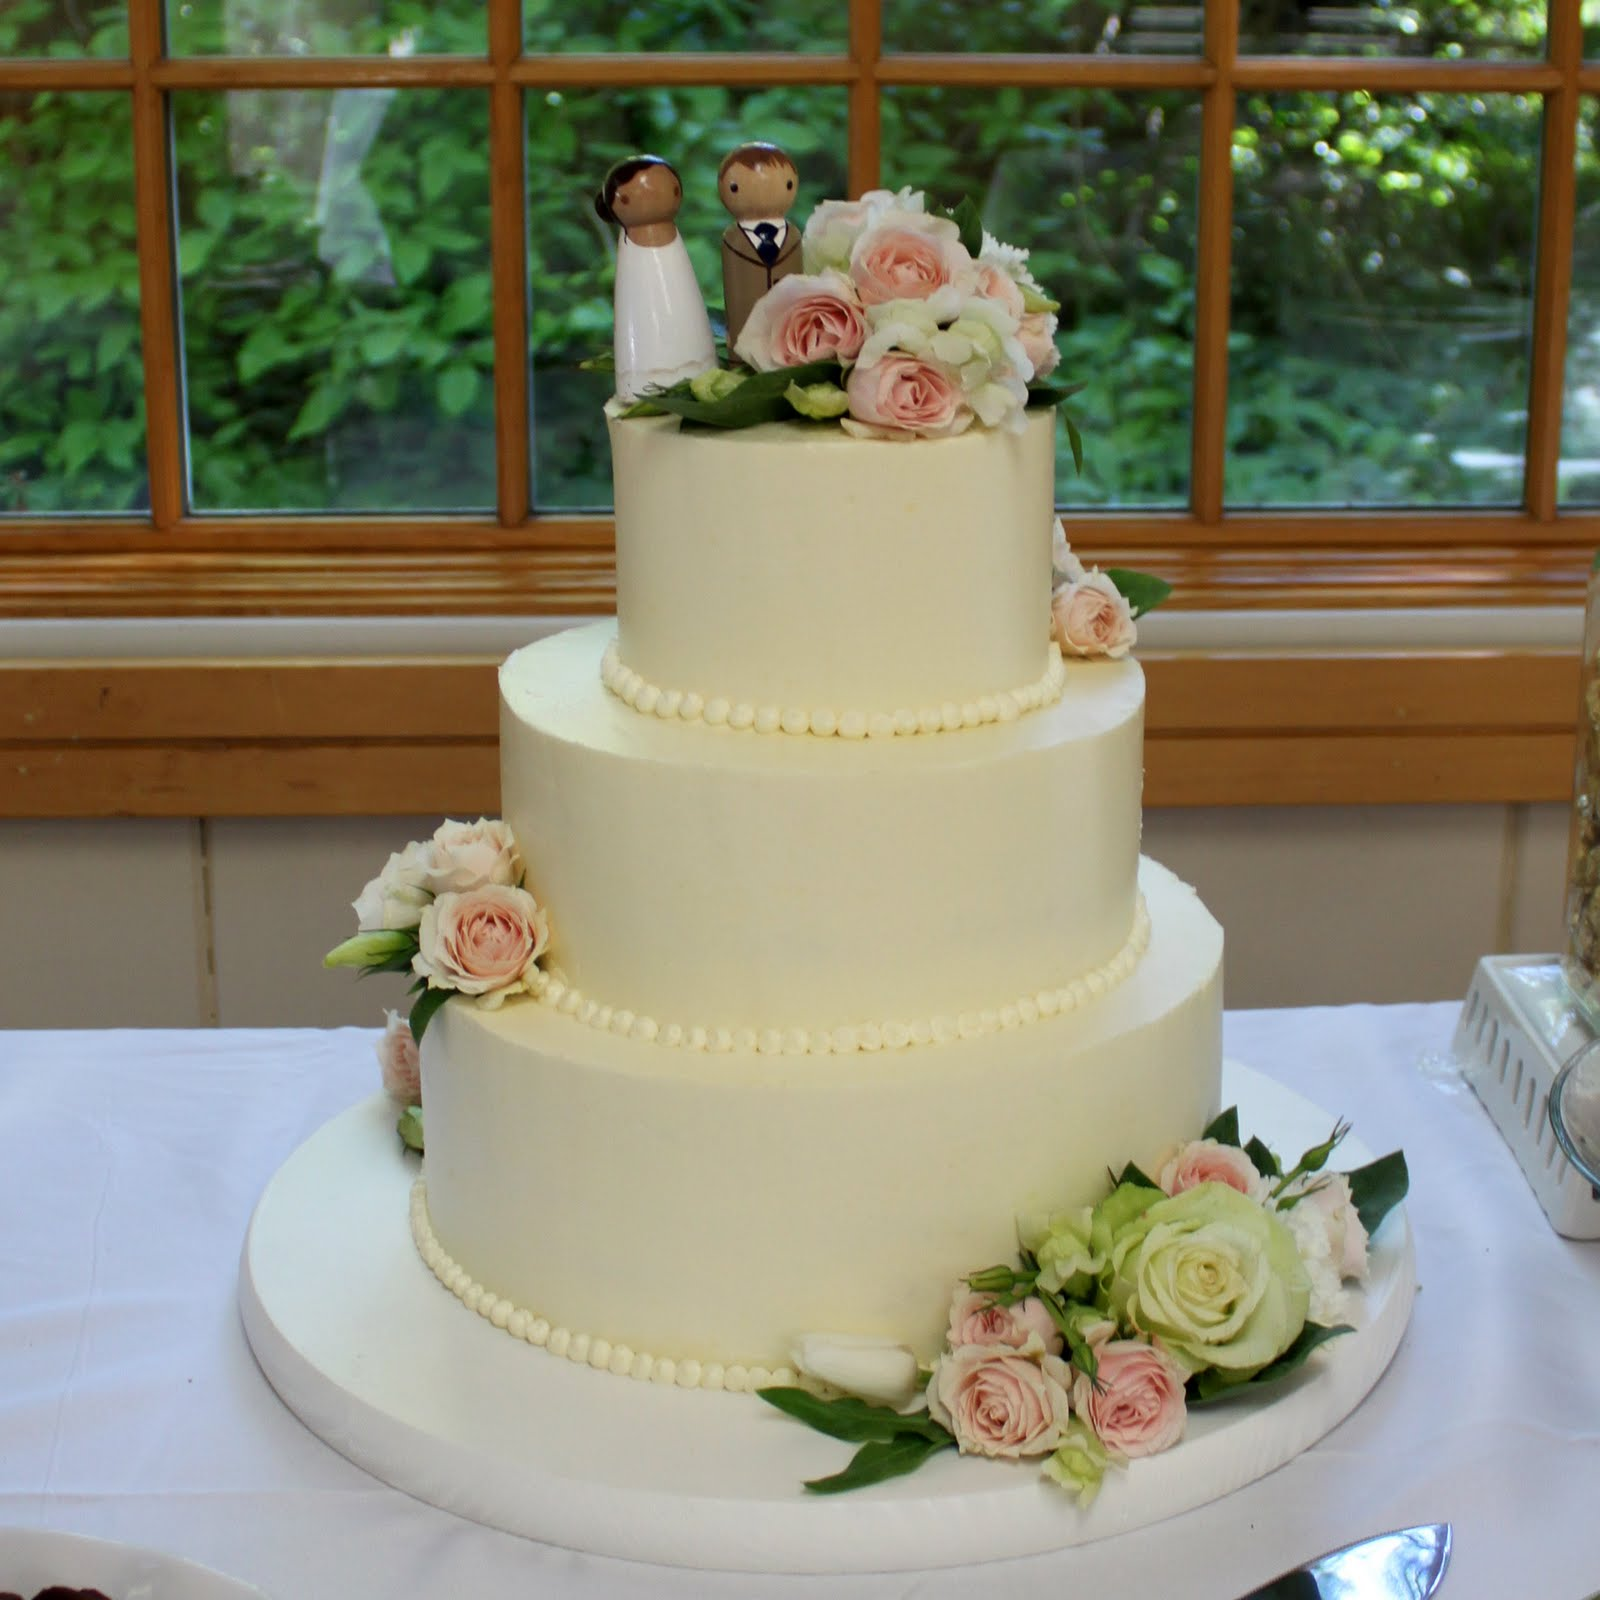 Confectionery Elegance Wedding Gallery: Wedding Cake Gallery